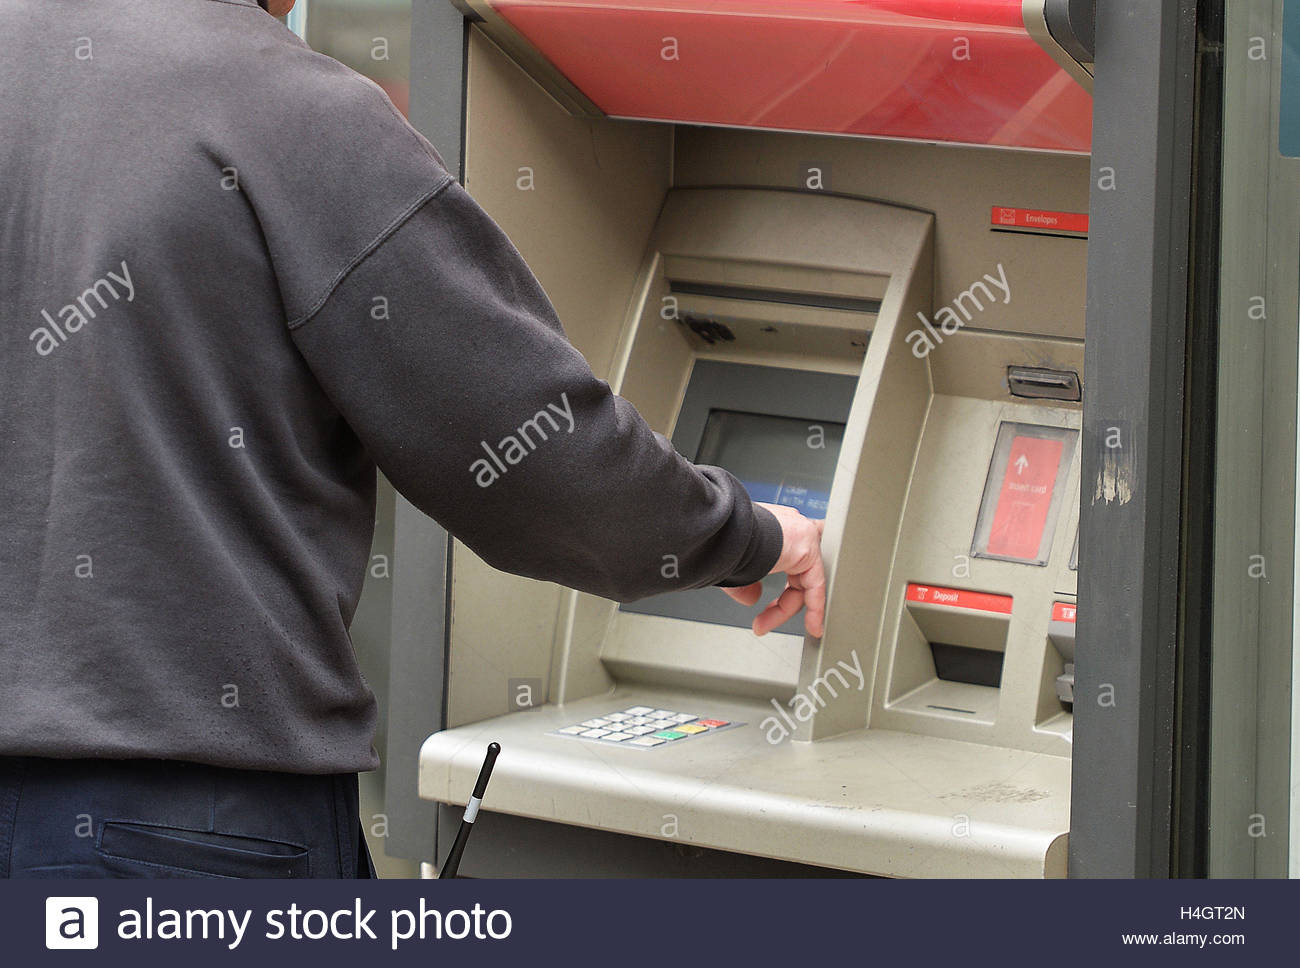 EMBARGOED TO 0001 MONDAY OCTOBER 17 File photo dated 27/04/16 of a man using a cash machine outside in central London, - Stock Image